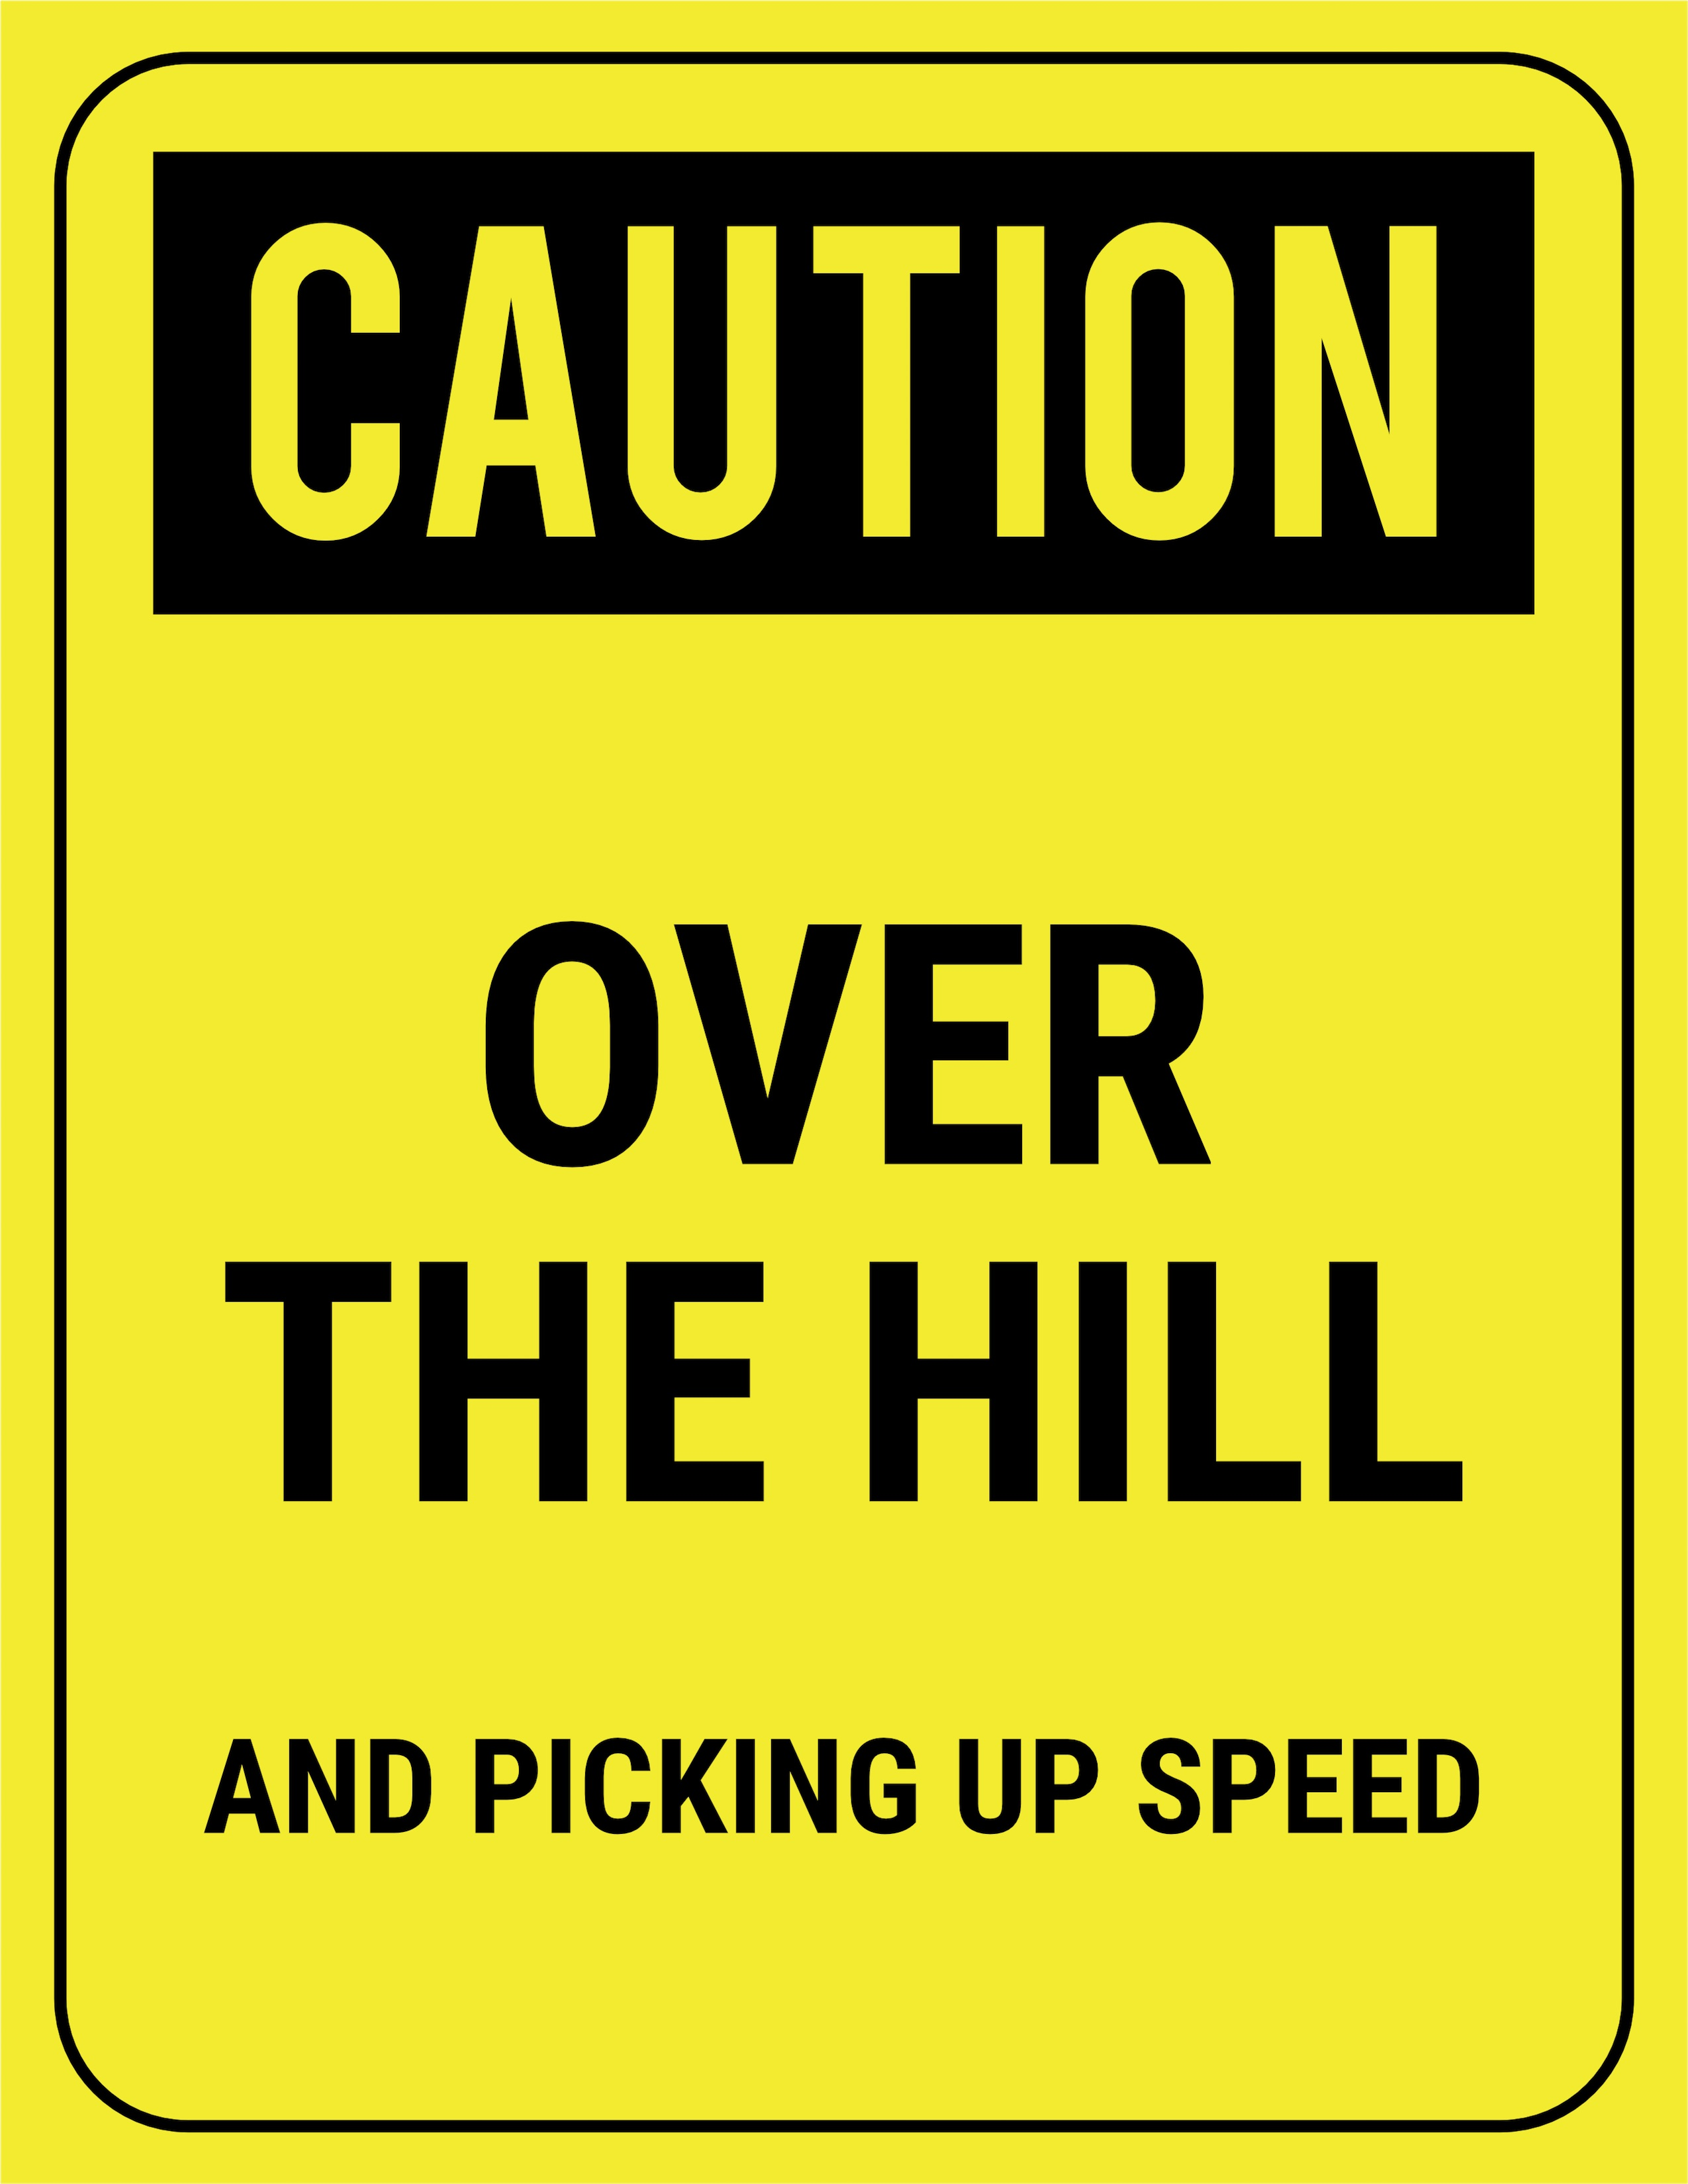 funny safety signs to